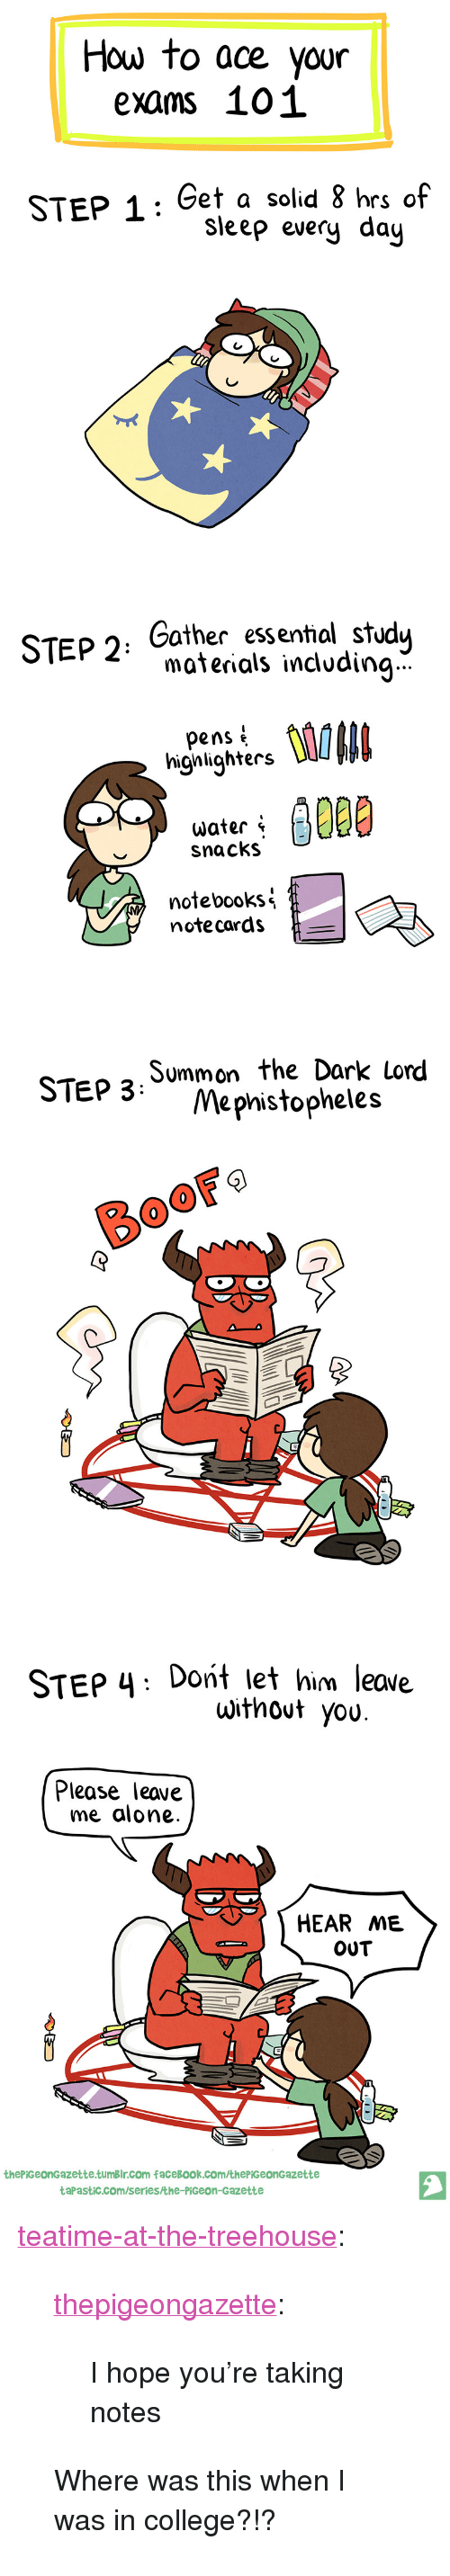 """Boof: How to ace your  exams 101  STEP 1: Get a solid 8 hrs of  Sleep every day   STEP 2: Cother essentnal study  materials incudin...  hgatghs  highlighters  snacks  notebooks  notecards   STEp 3 Summon the Dark lond  Mephistopheles  BooF   STEP 4: Dont let him leave  without you  Please leave  me alone.  HEAR ME  OUT  thePiGeonGazette.tumBlr.com faceBook.com/thePiGeonGazette  taPastic.com/serieskhe-PiGeon-Gazette <p><a href=""""http://teatime-at-the-treehouse.tumblr.com/post/156362541499/i-hope-youre-taking-notes"""" class=""""tumblr_blog"""">teatime-at-the-treehouse</a>:</p> <blockquote> <p><a href=""""http://thepigeongazette.tumblr.com/post/154469380415/i-hope-youre-taking-notes"""" class=""""tumblr_blog"""">thepigeongazette</a>:</p>  <blockquote><p>I hope you're taking notes<br/></p></blockquote>  <p>Where was this when I was in college?!?</p> </blockquote>"""